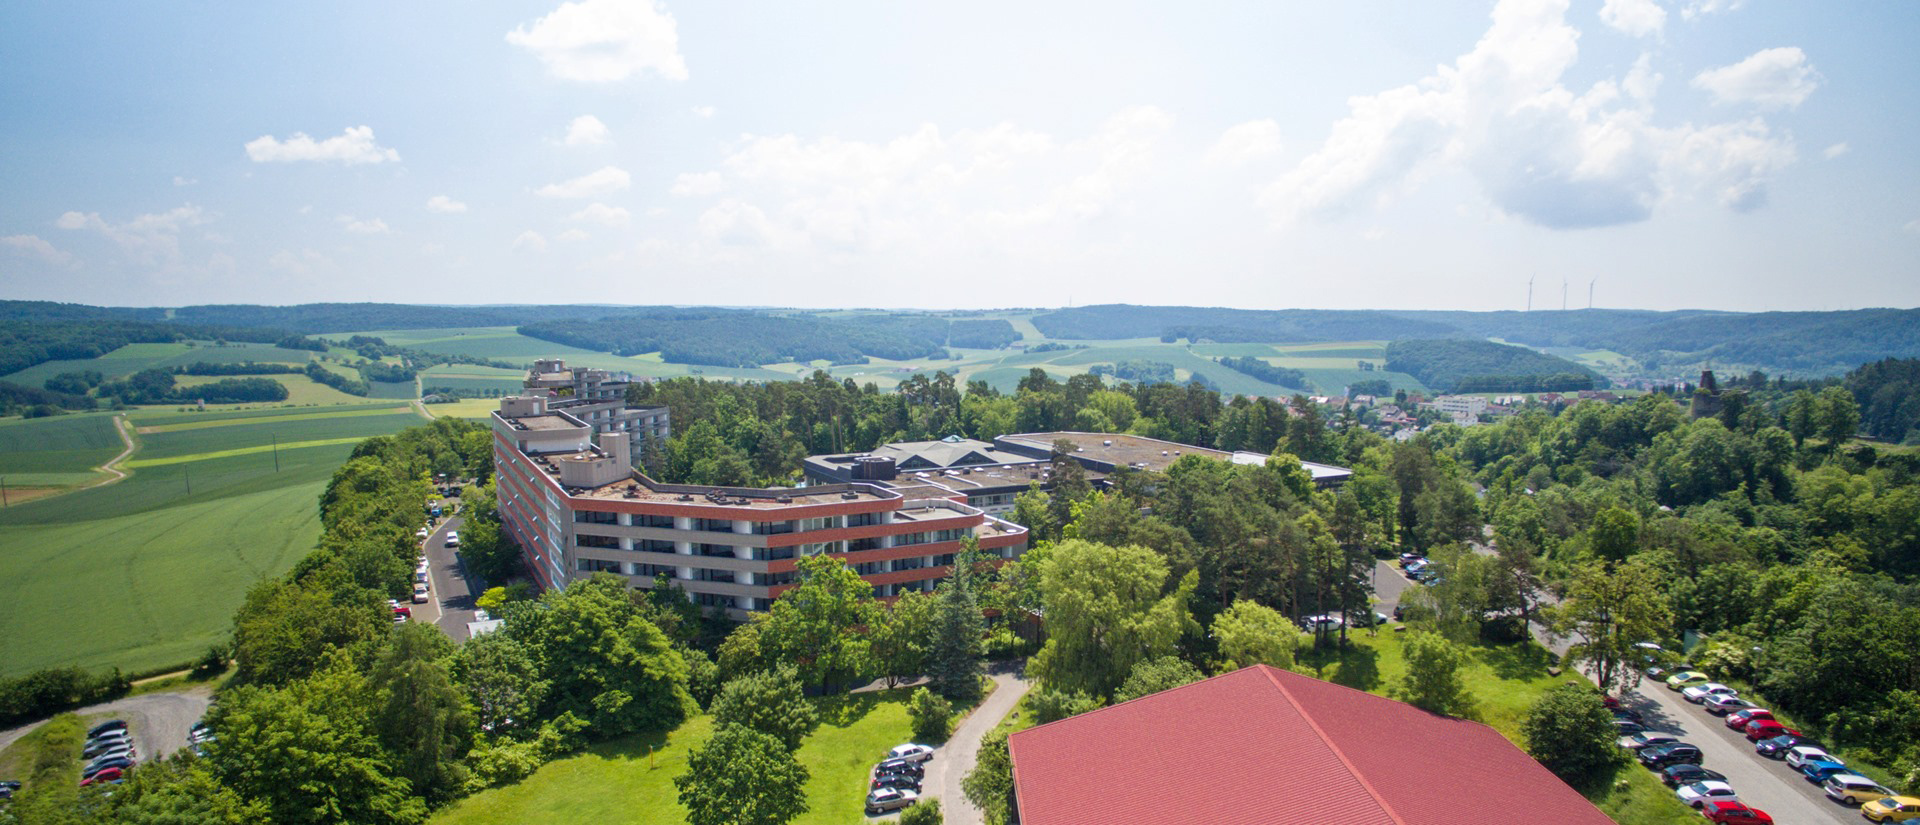 Bad Kissingen, Conference Partner Hotel Sonnenhügel